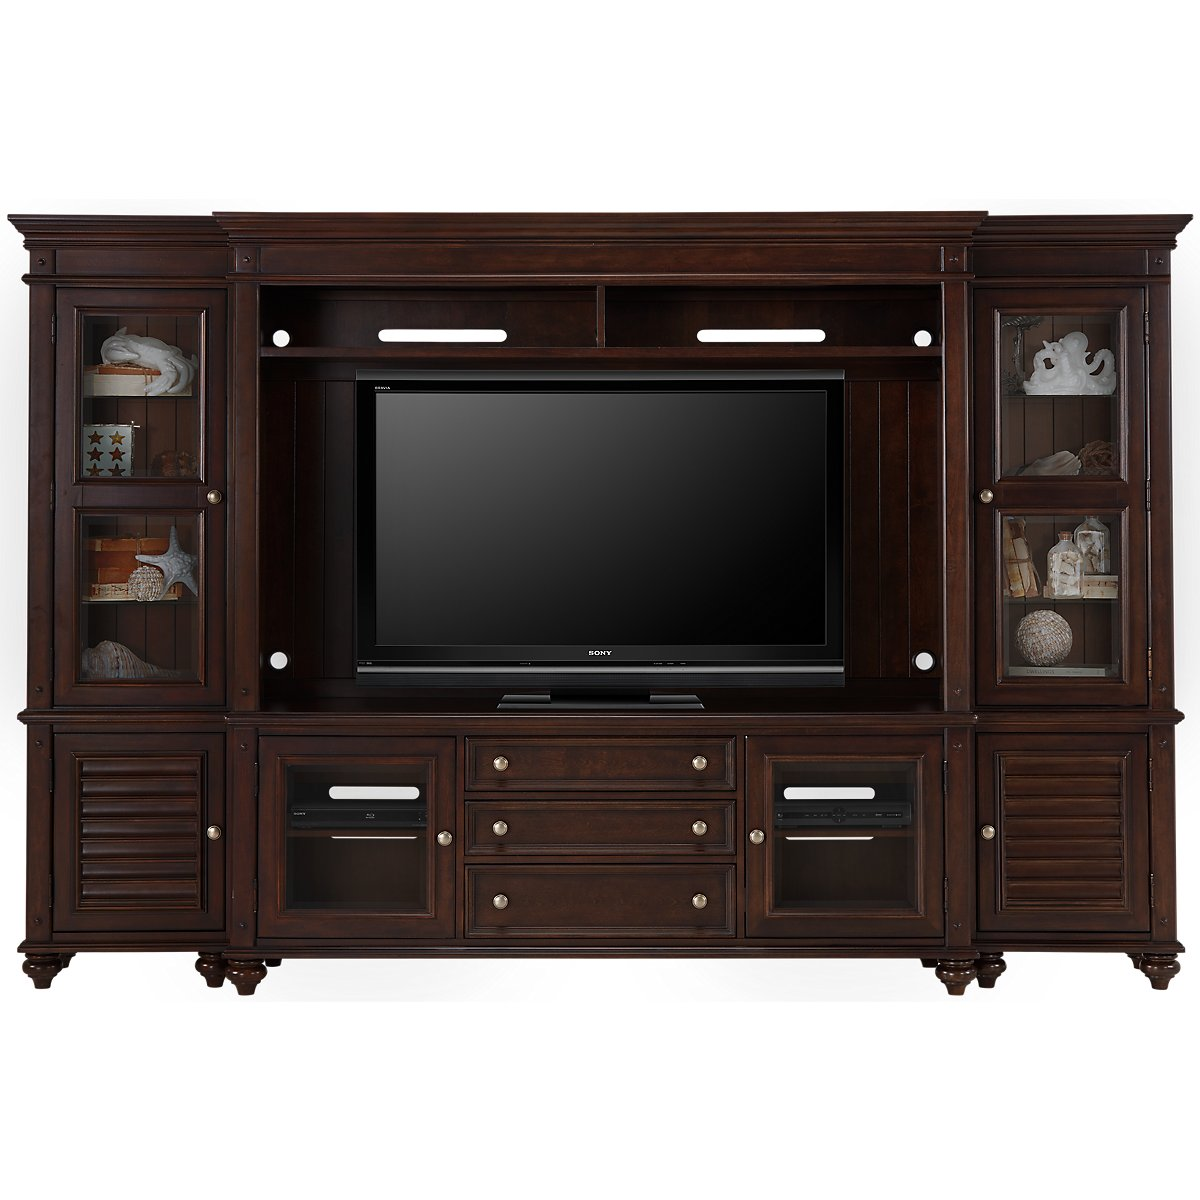 Savannah Dark Tone Wood Entertainment Wall